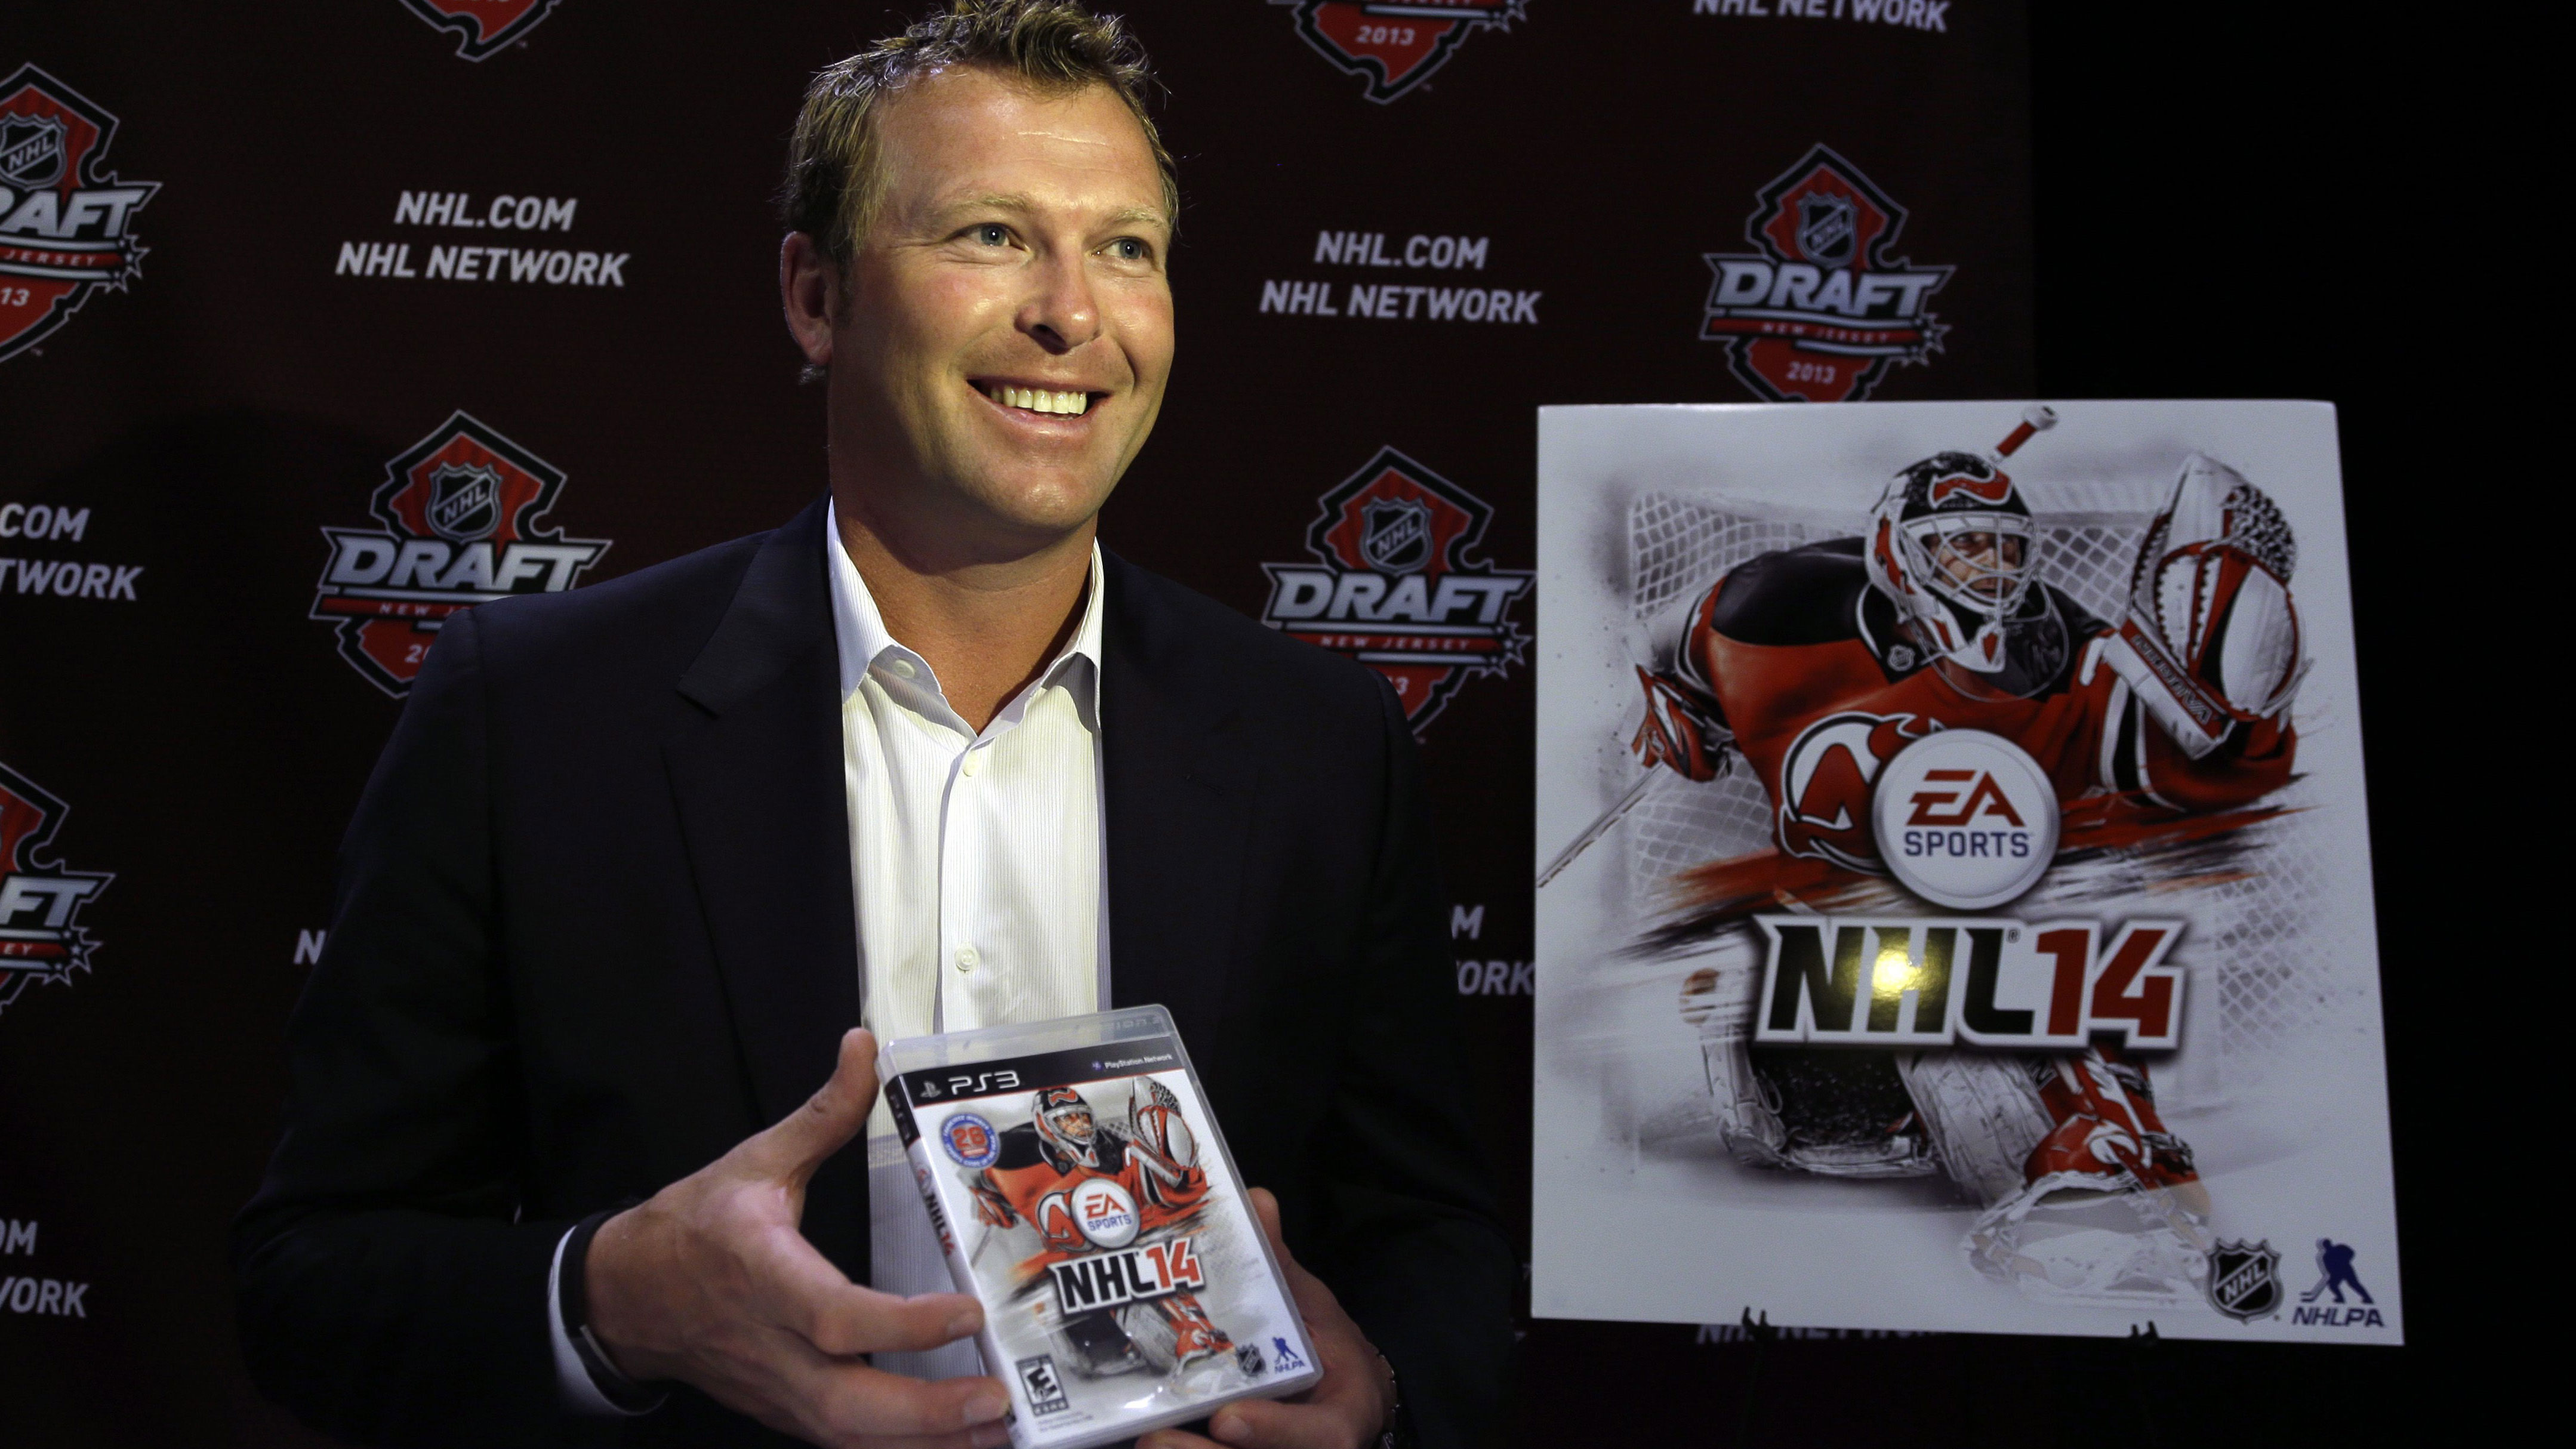 378624dba NHL 14 cover vote shows Brodeur is still a name - Sportsnet.ca